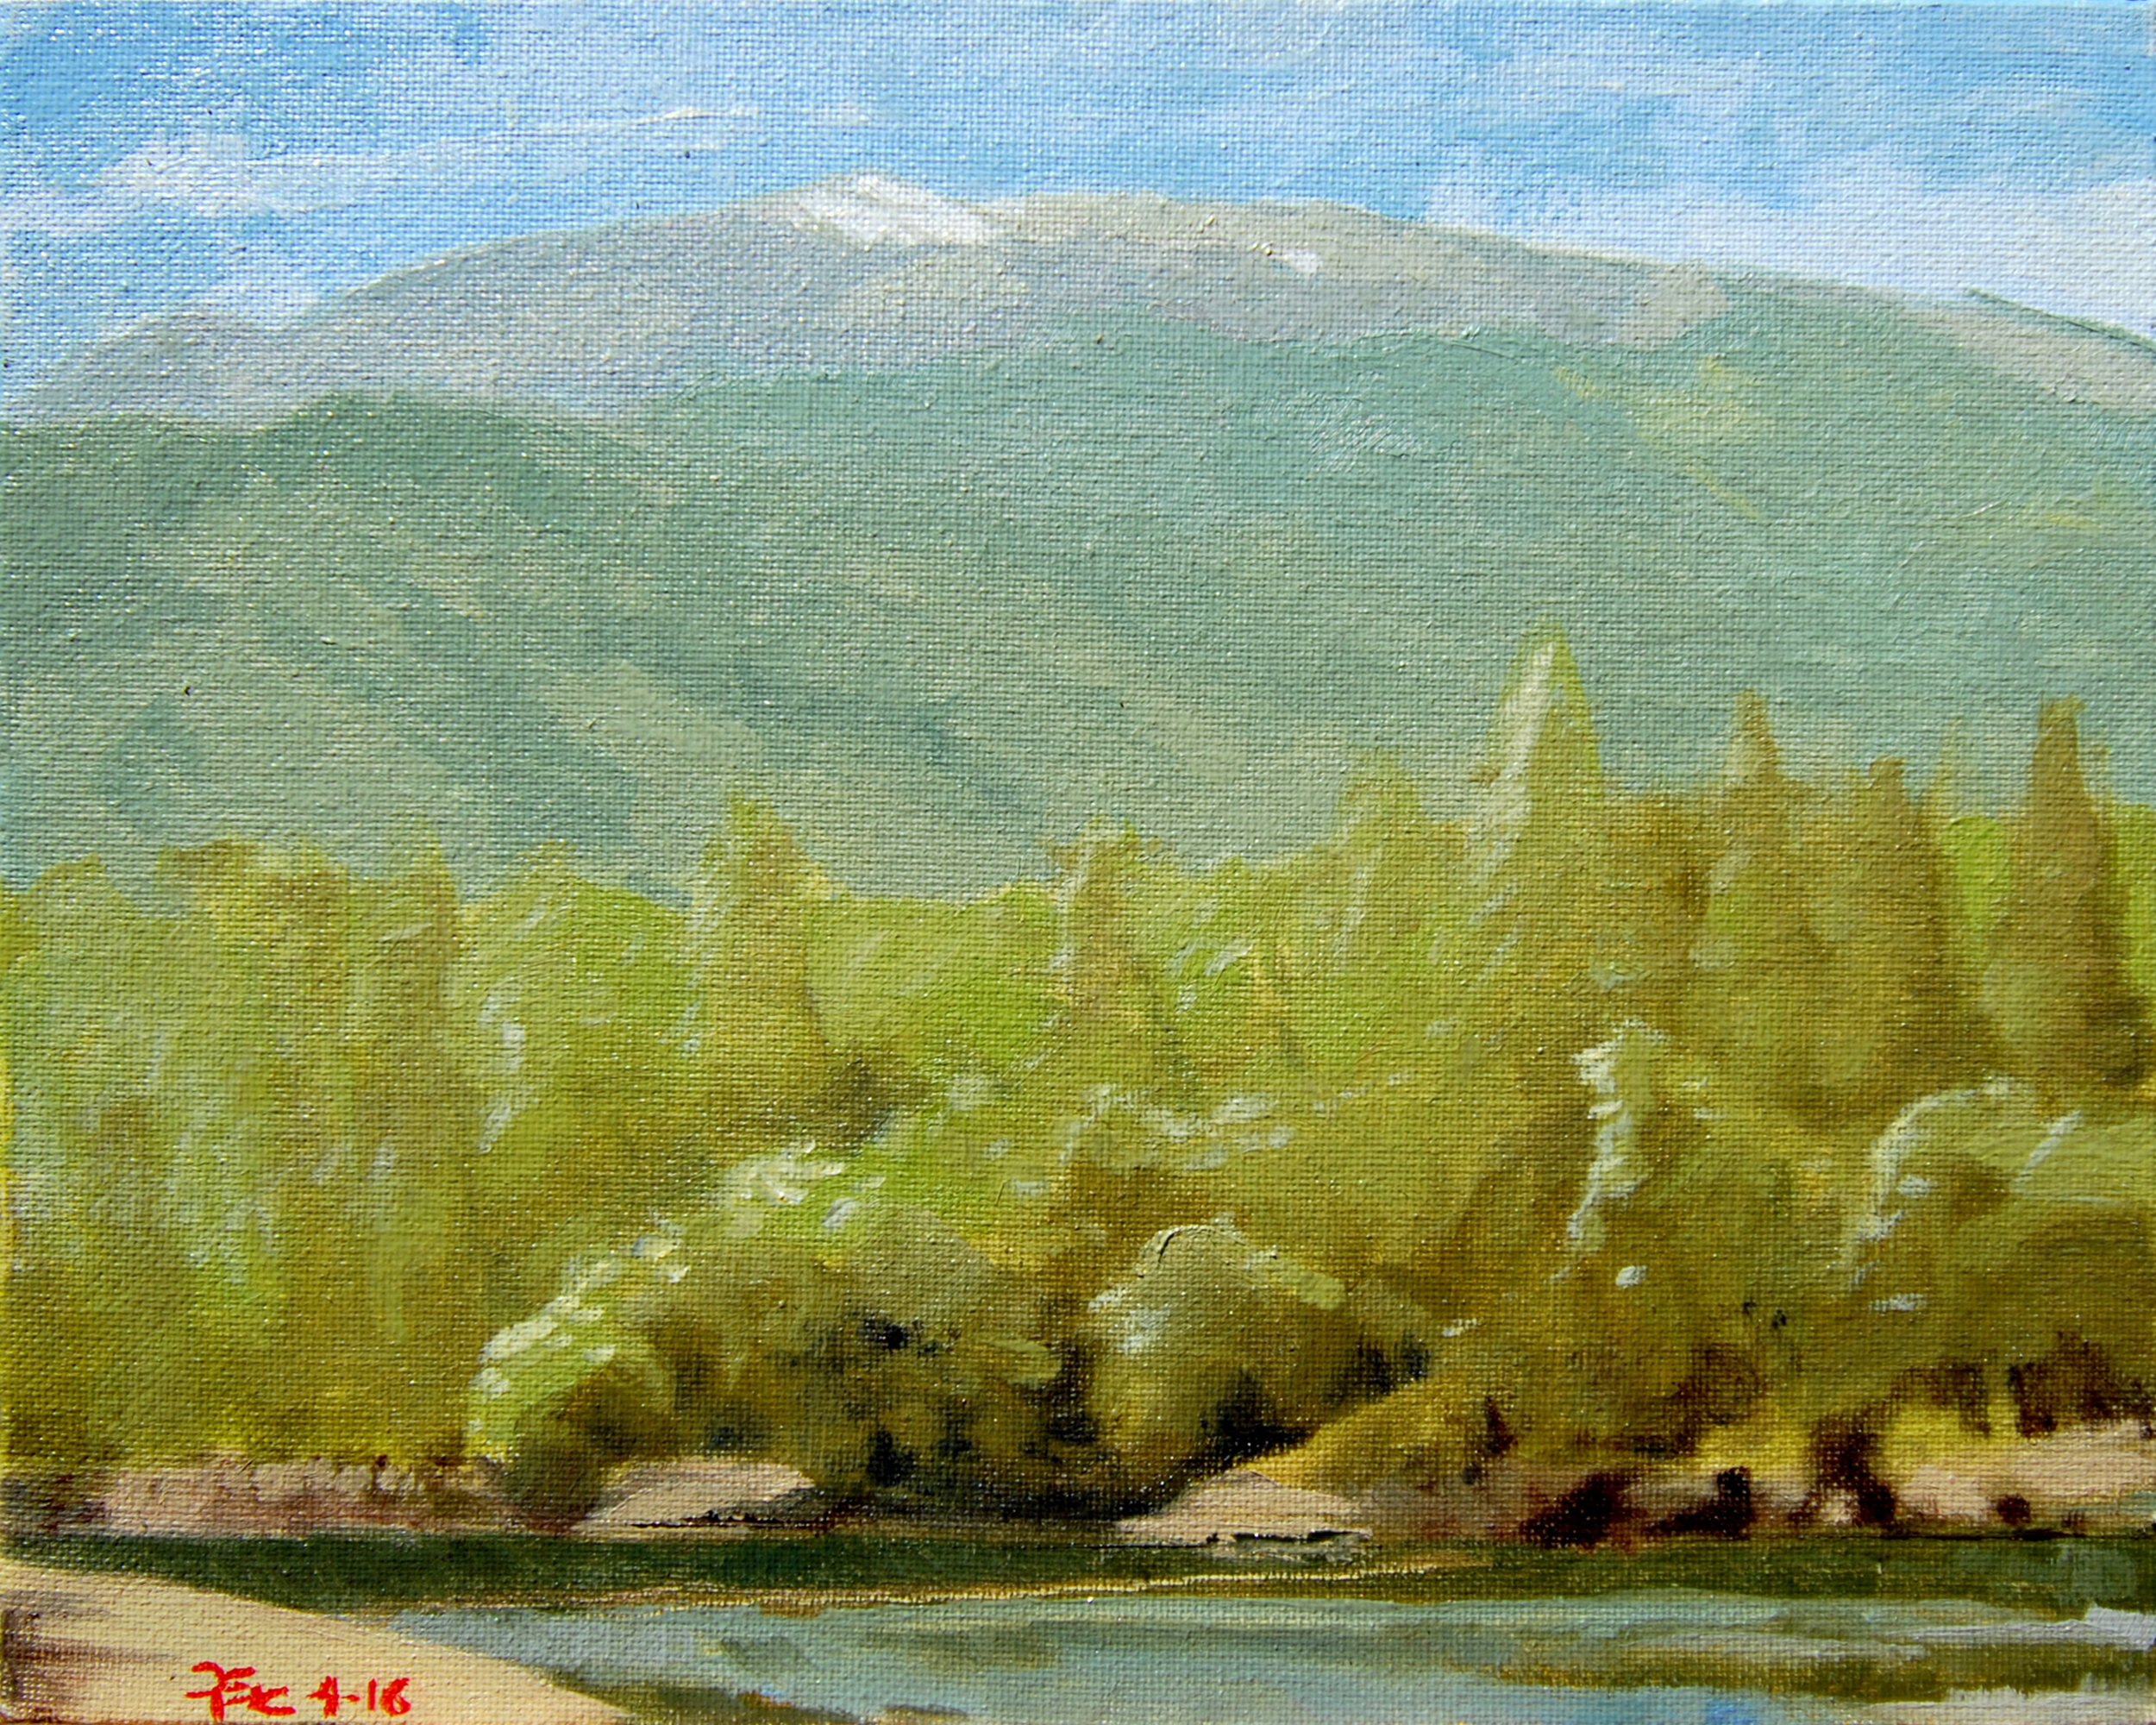 Shasta Bally with April Snow,  8 x 10 in.  Oil on canvas. Available for purchase. (2016)